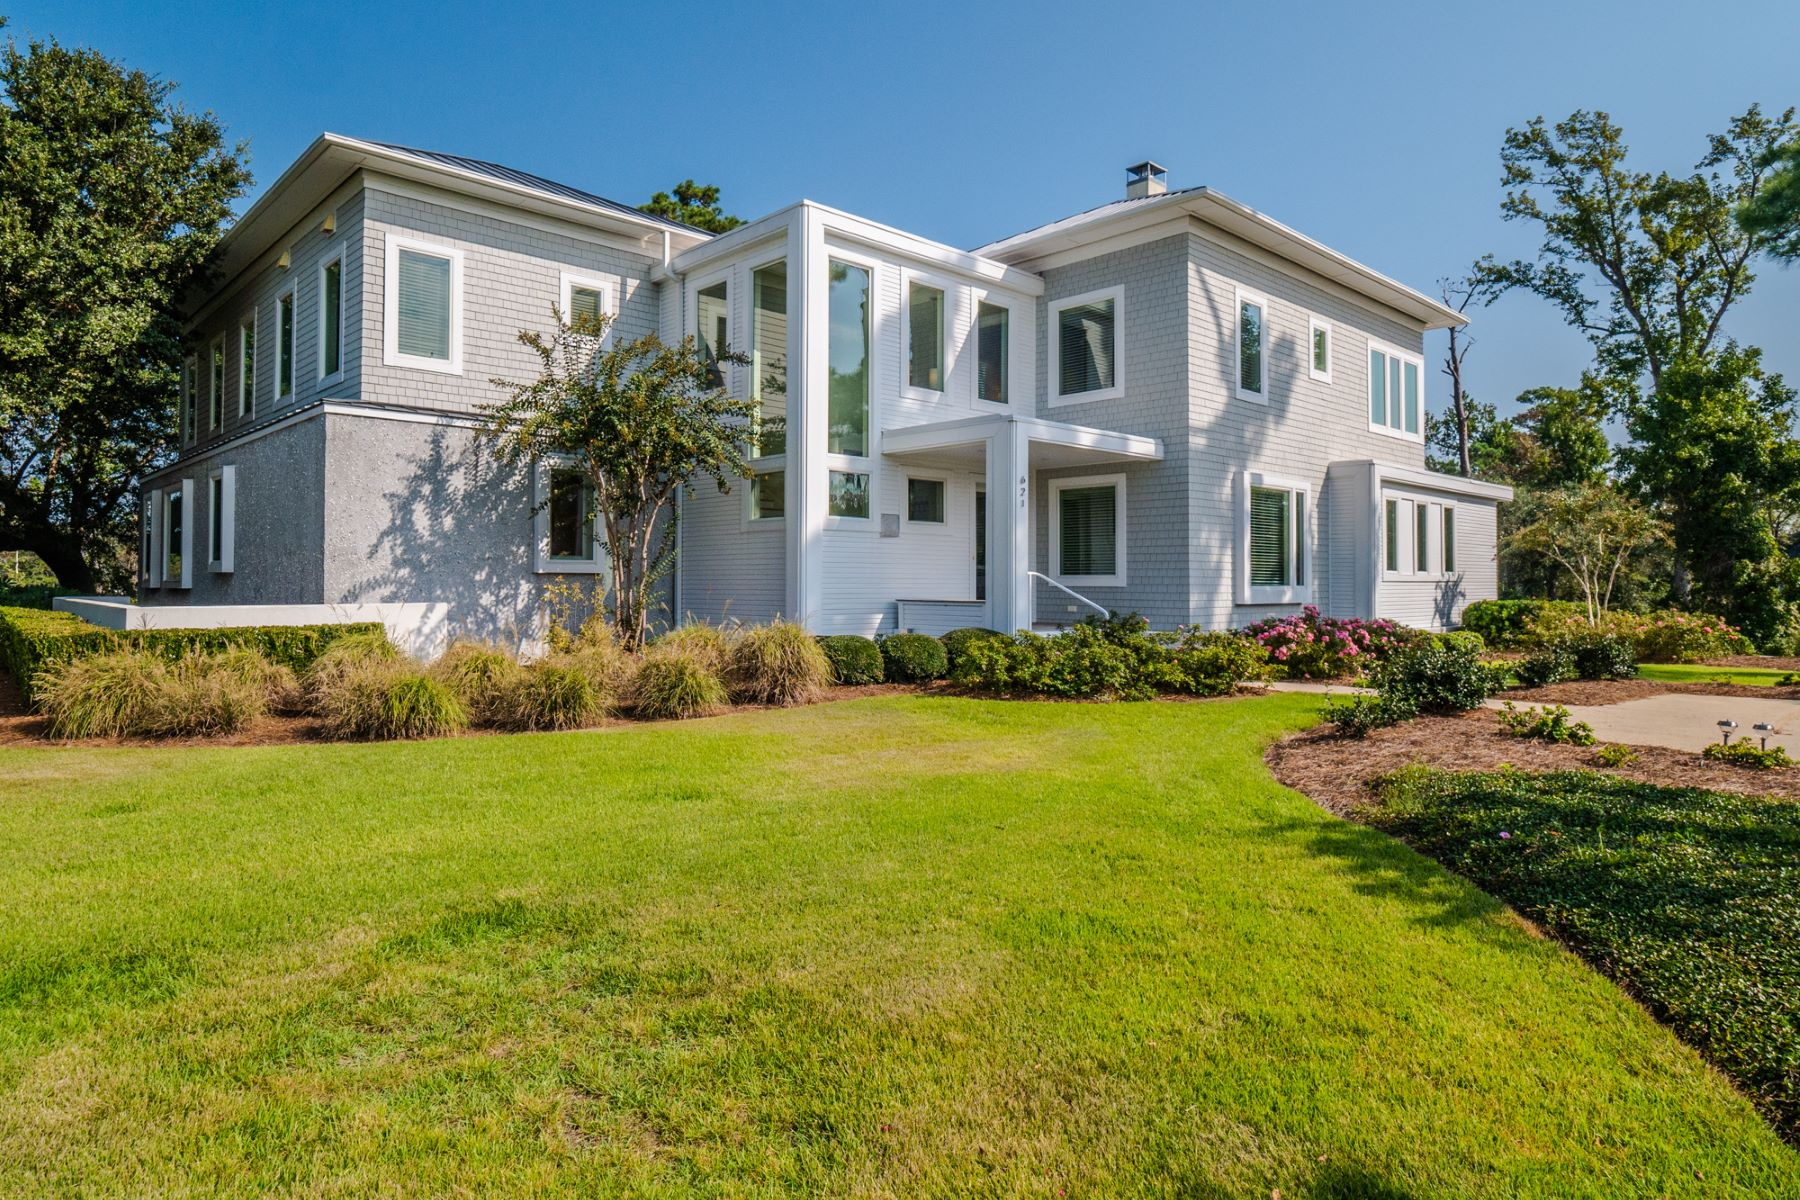 Single Family Homes for Sale at Contemporary Home on High Bluff in Landfall 621 Dundee Pl Wilmington, North Carolina 28405 United States